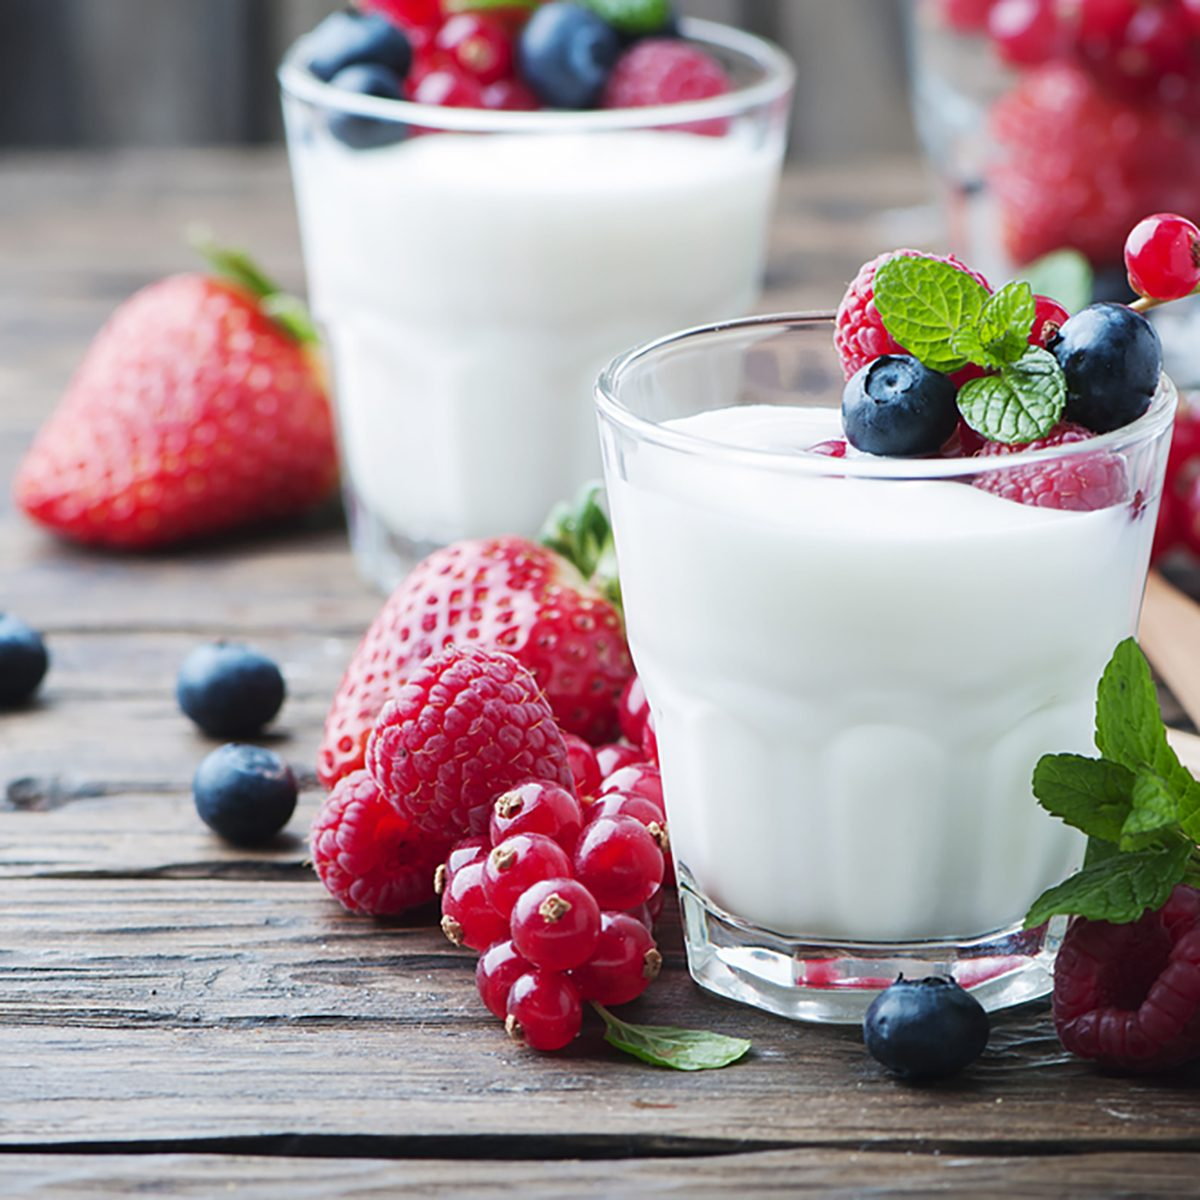 Healthy yogurt with mix of berry, selective focus